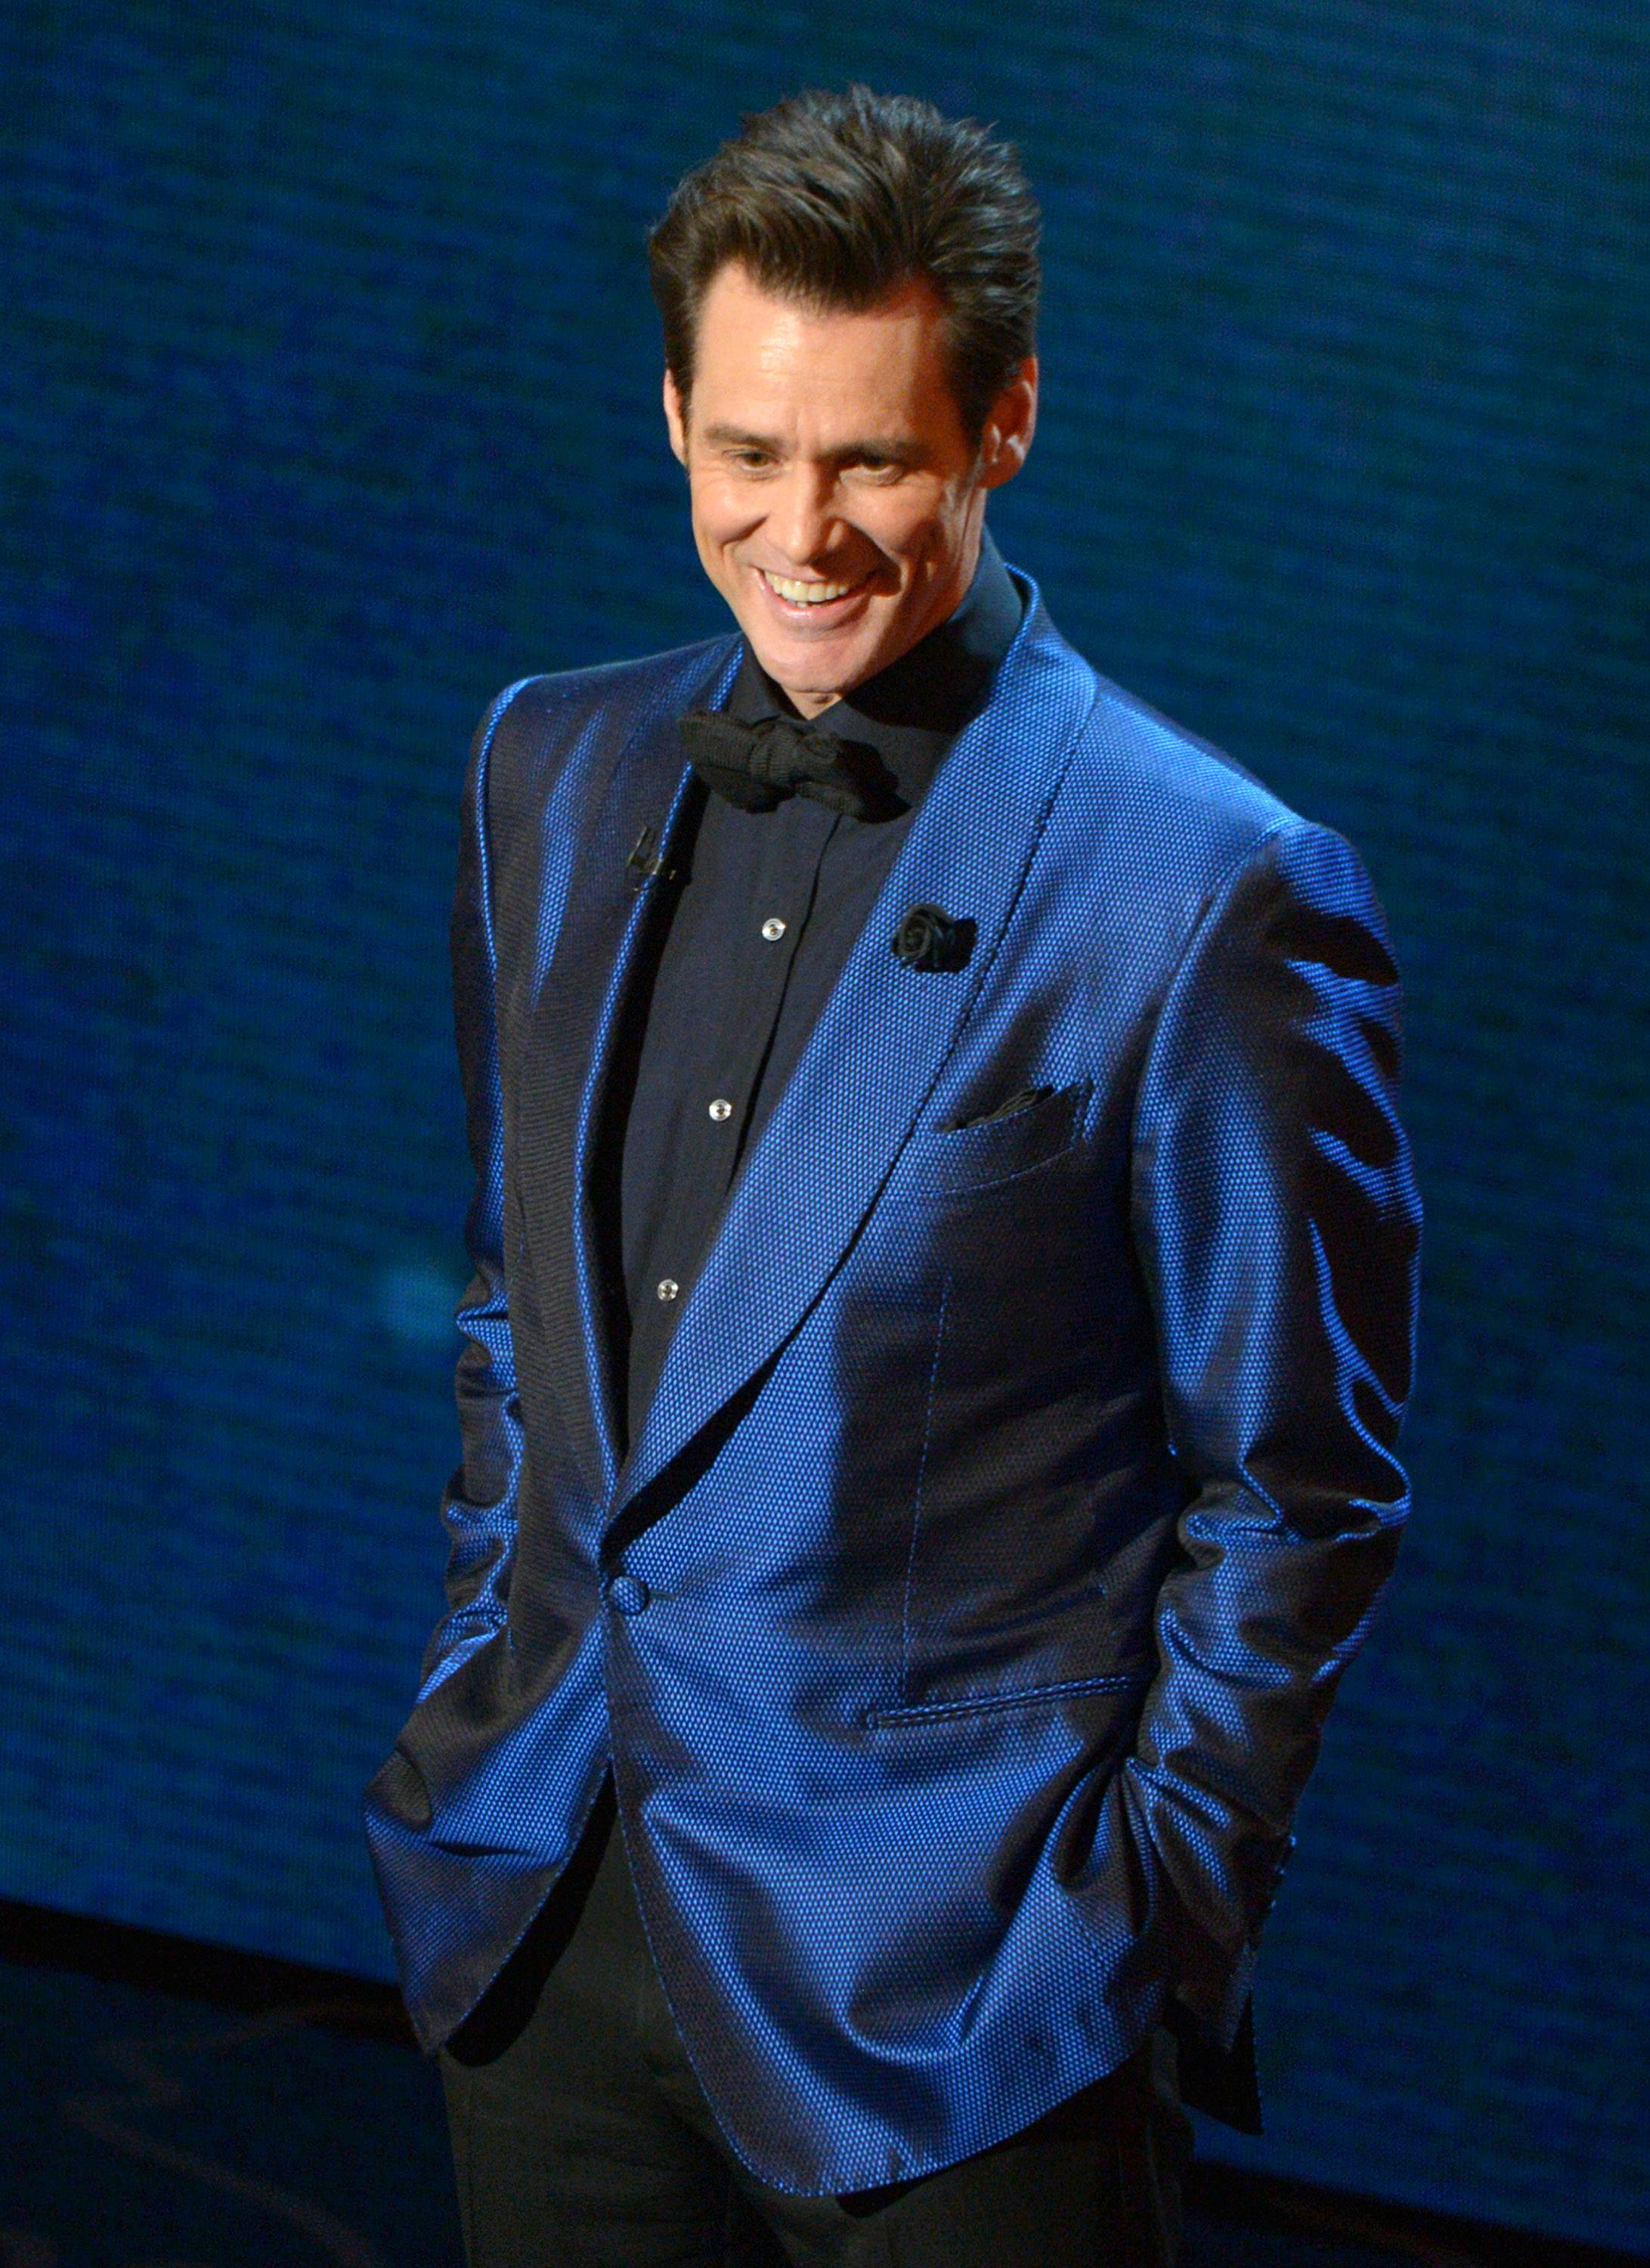 Jim Carrey speaks on stage during the Oscars at the Dolby Theatre on Sunday.